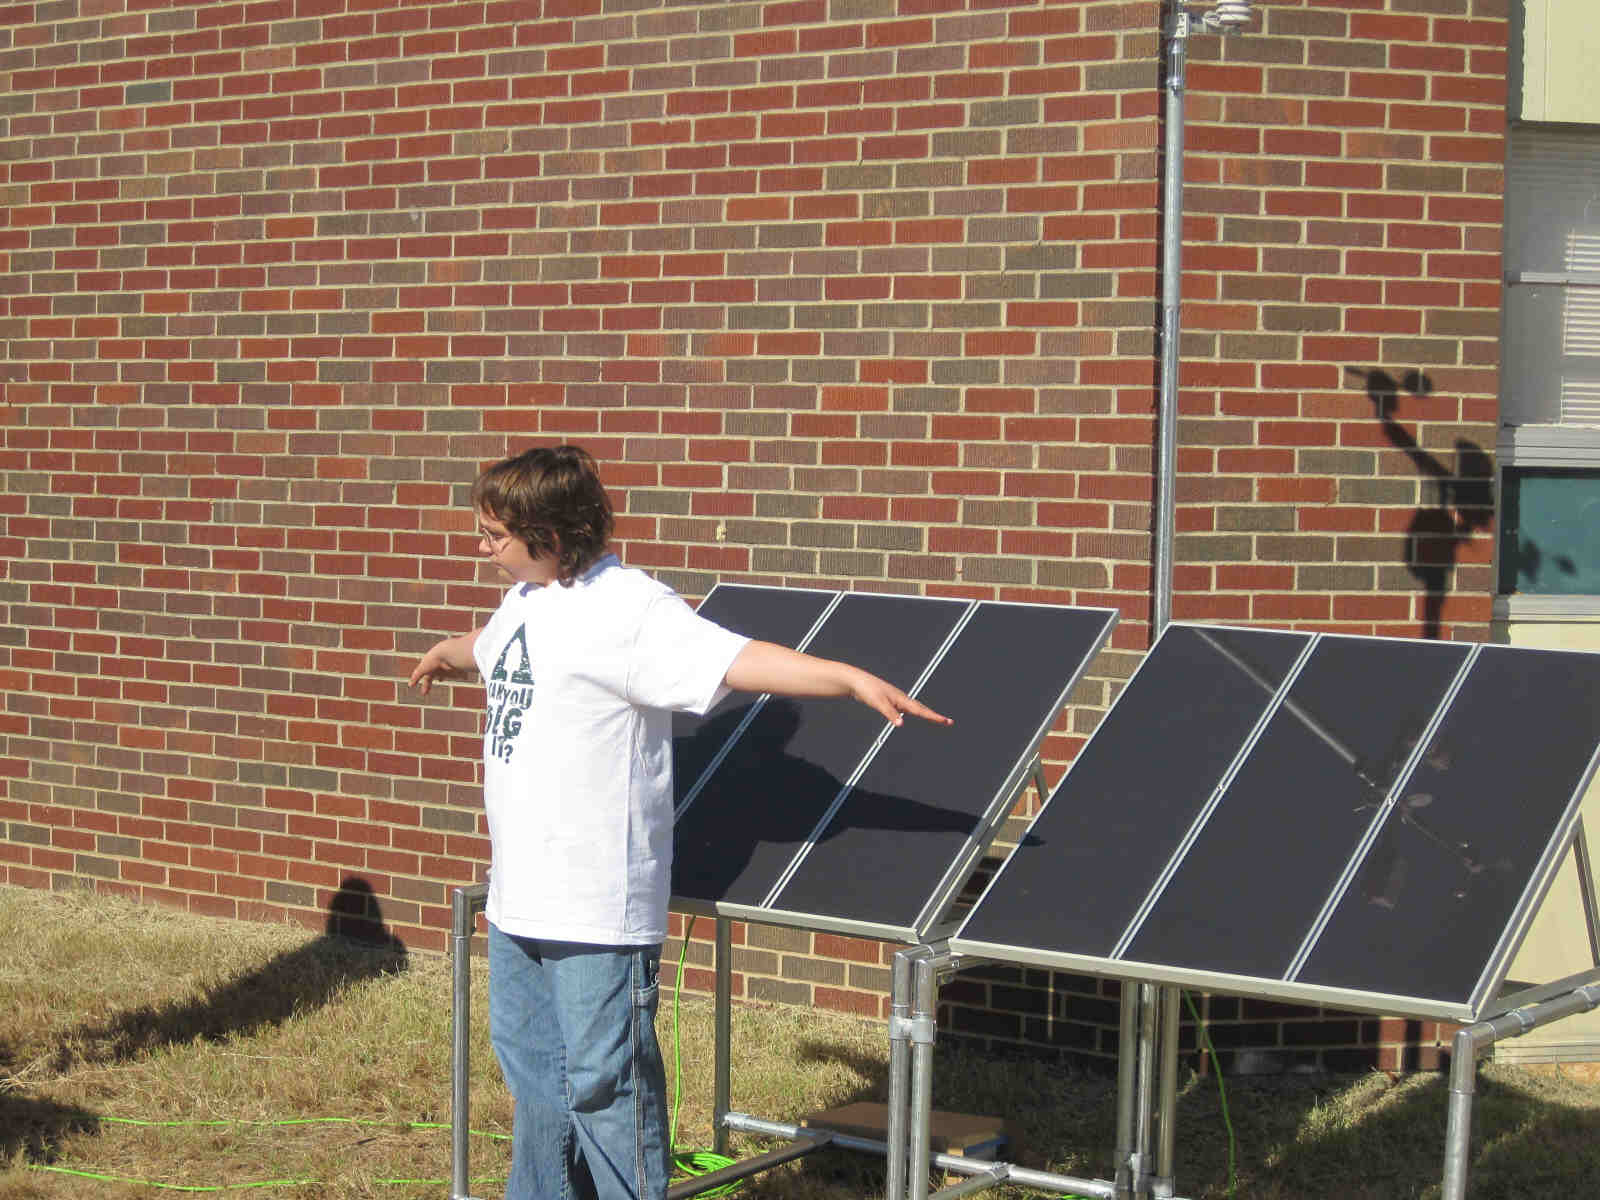 Let the experiments begin.  A student demonstrates the variation of energy production of the solar panels is directly related to the amount of sunlight that strikes them.